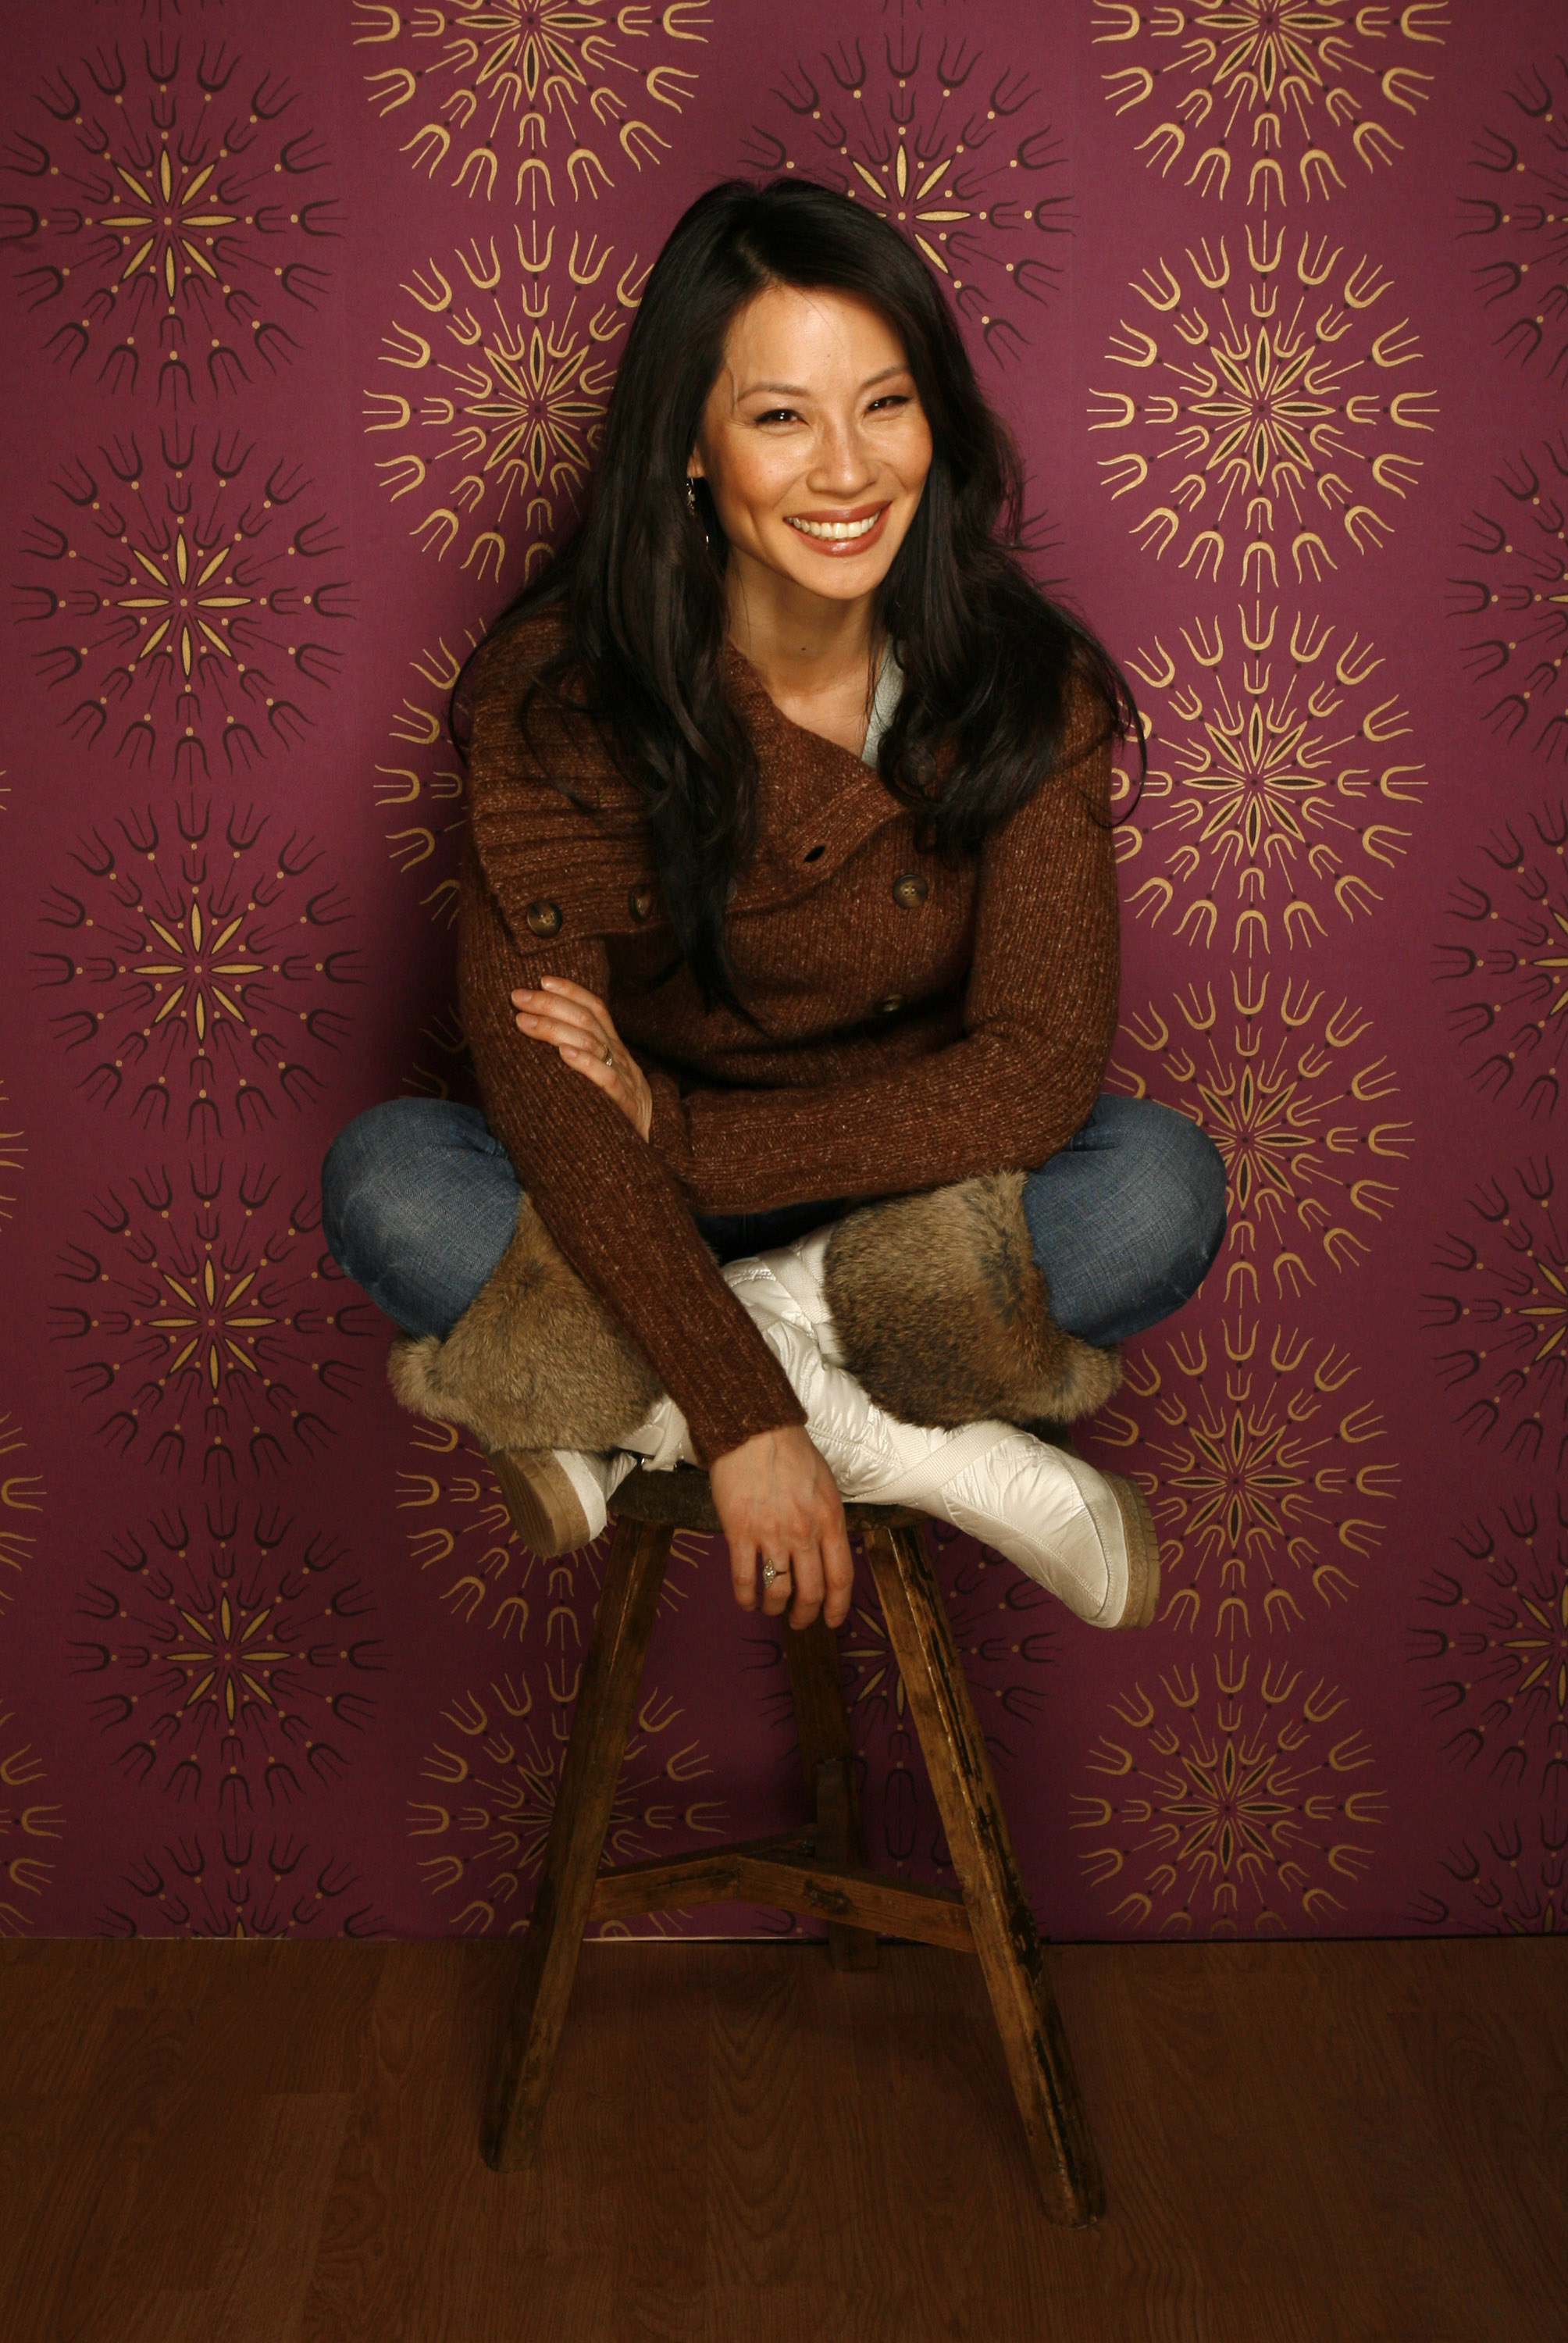 Photo Galery: Lucy Liu Photo Gallery - Page #12